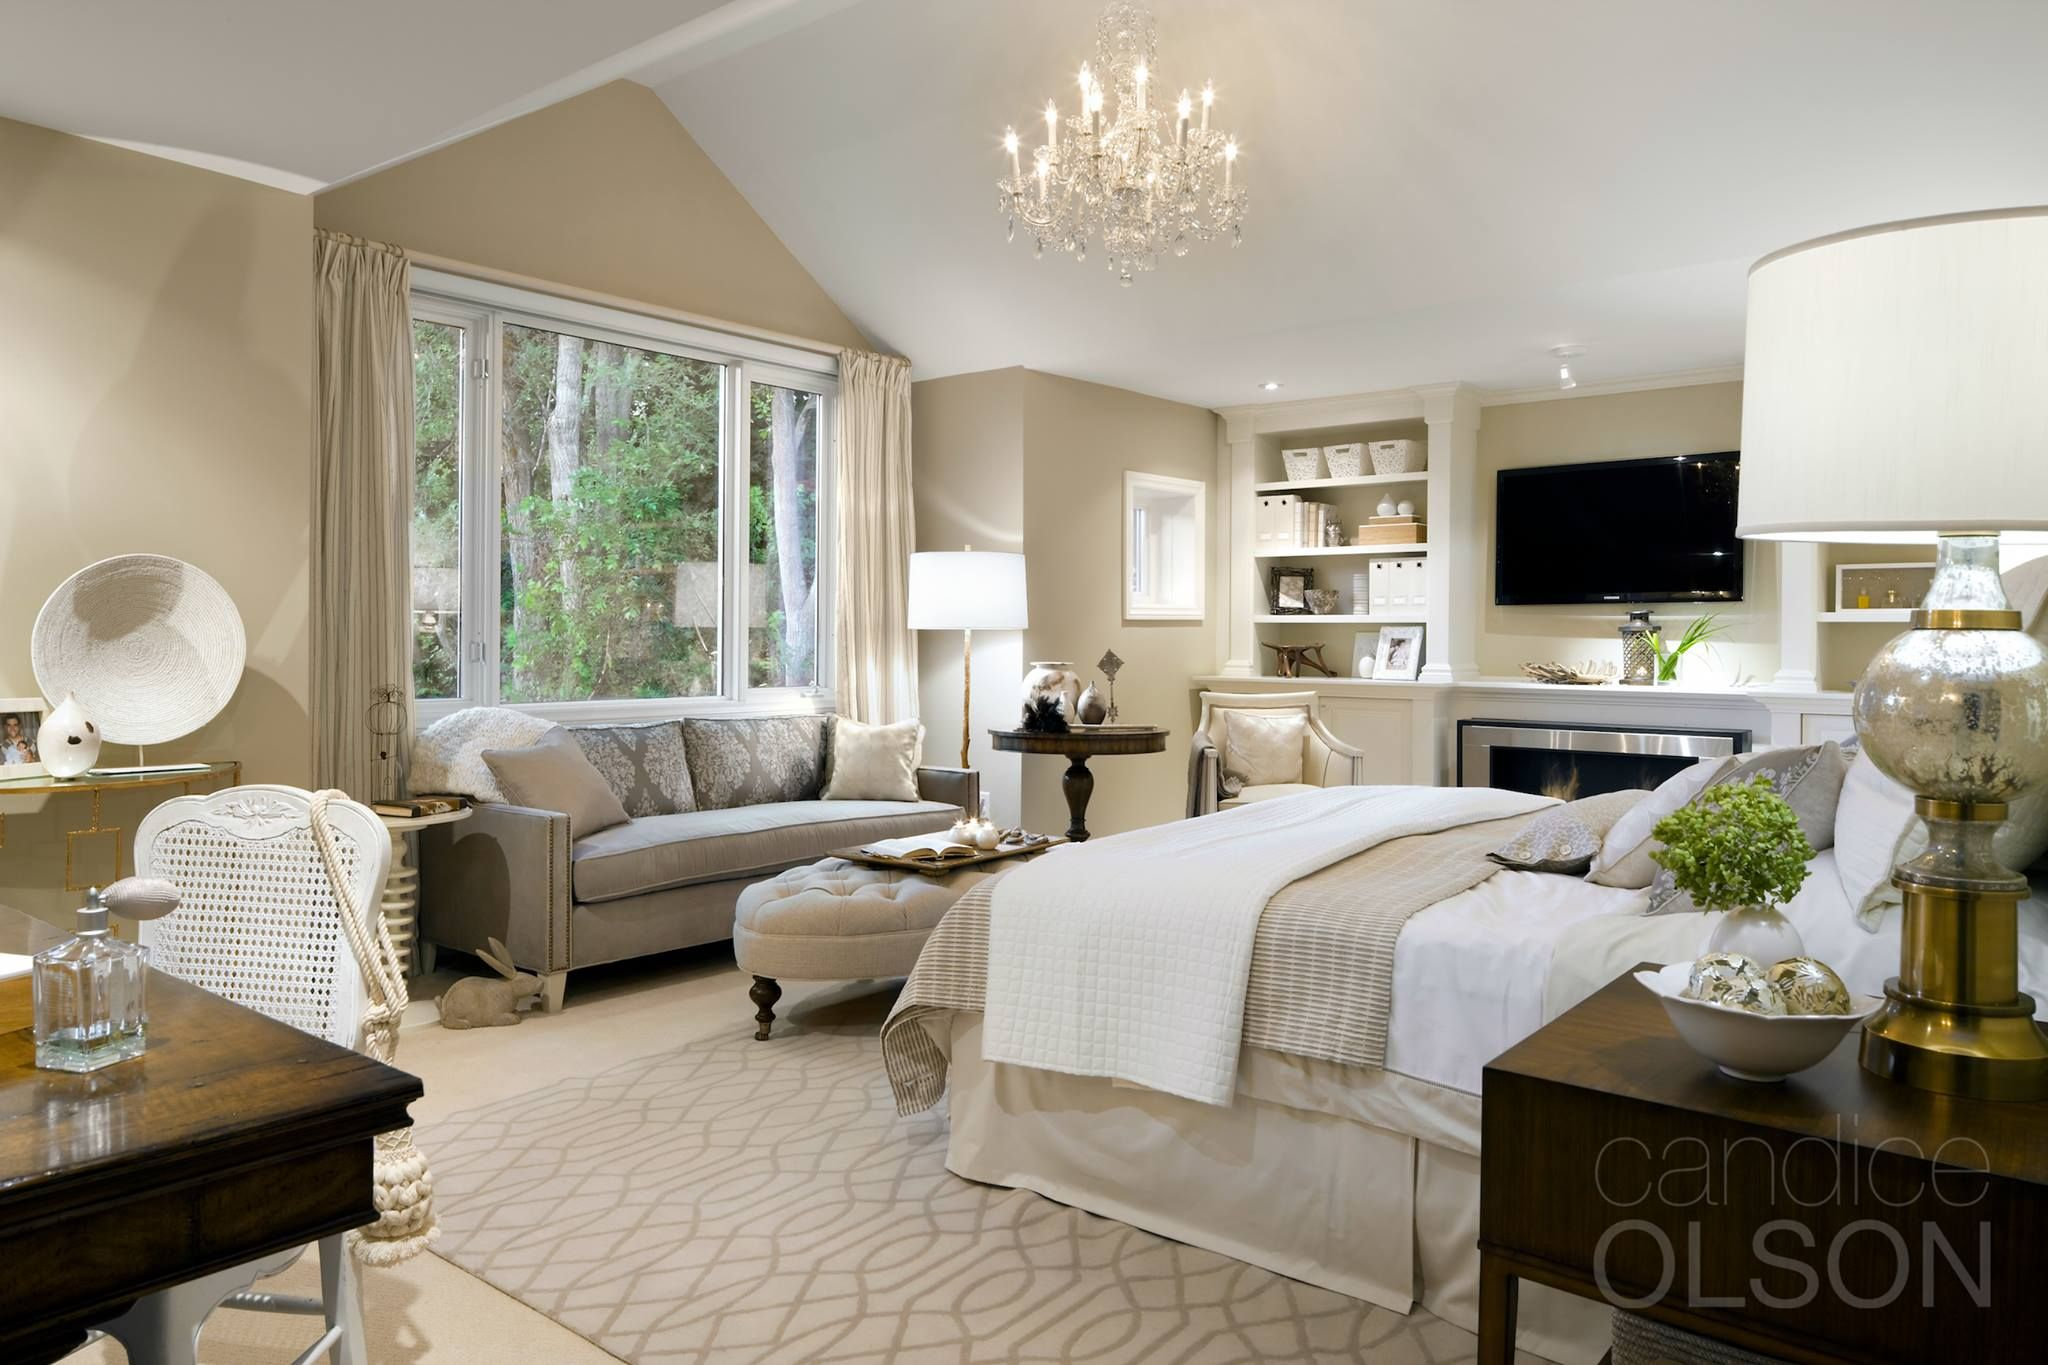 Drawing inspiration from this Candice Olson master bedroom Swoon